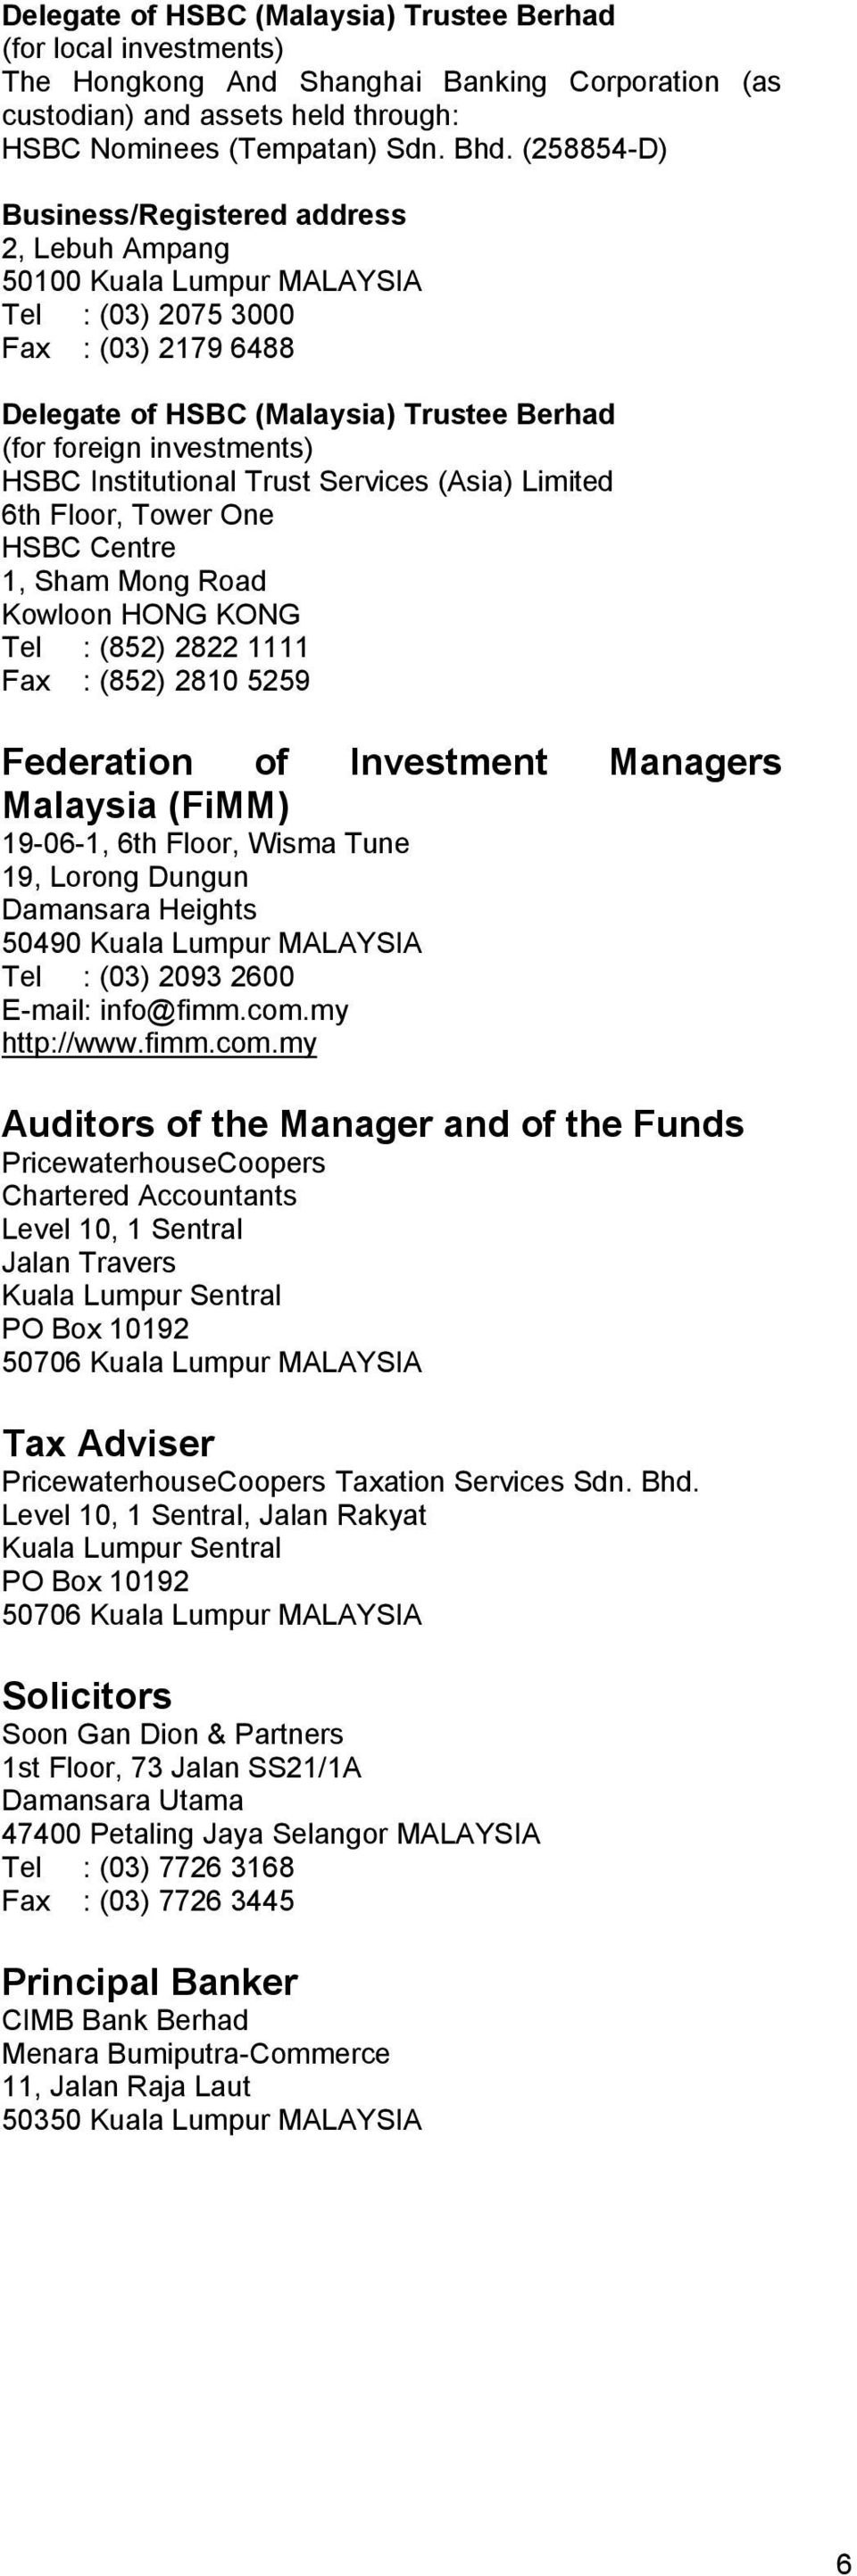 Thank you for considering an investment with CIMB-Principal